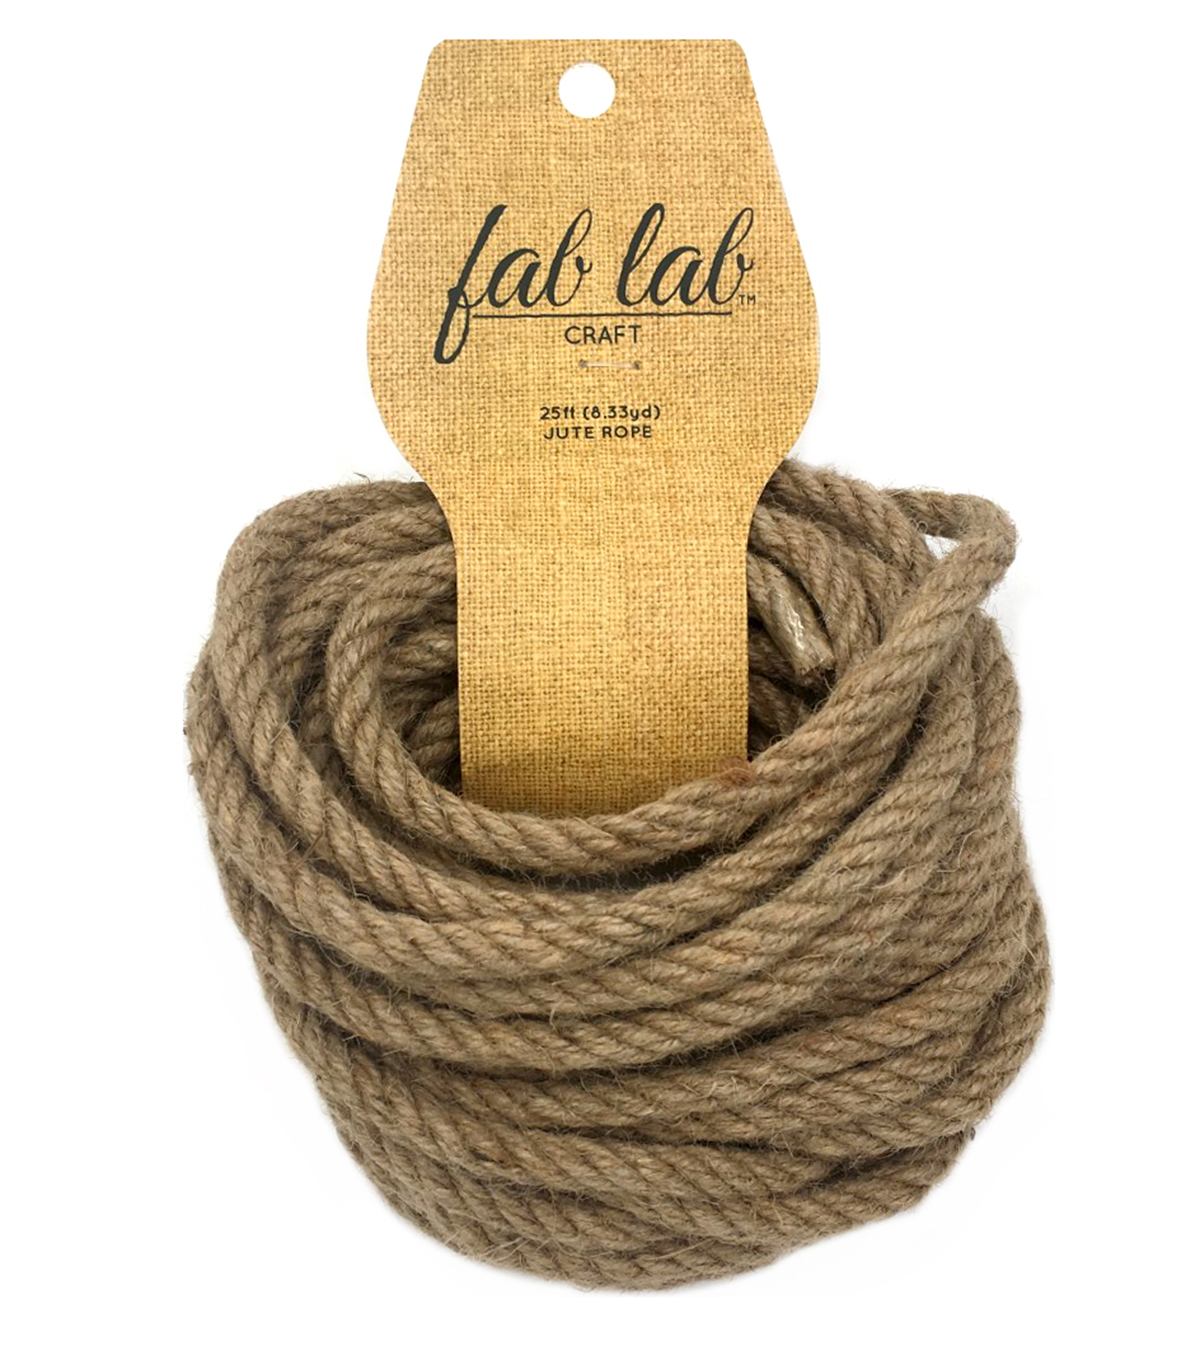 Fab Lab 1/4 in x 25 ft Jute Craft Rope